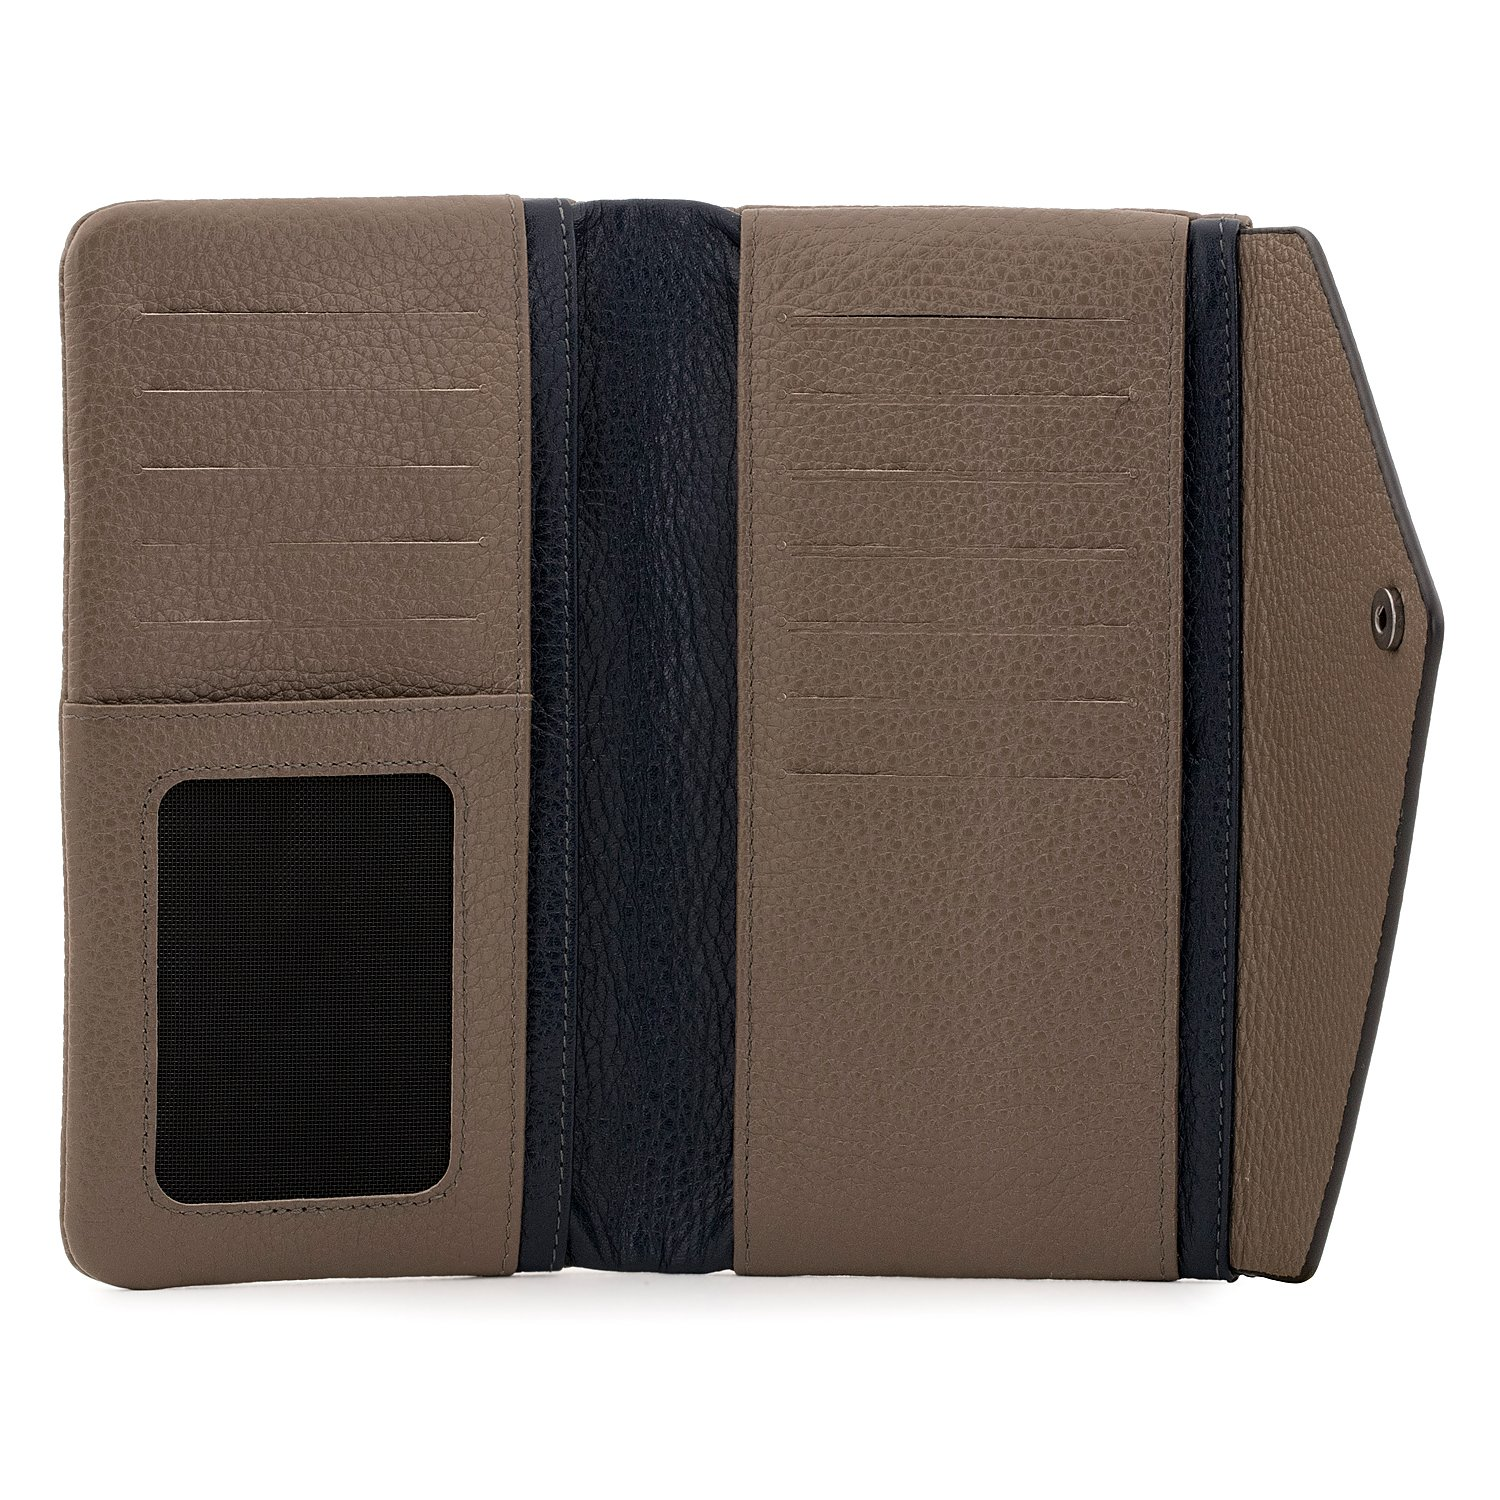 OTTO Genuine Leather Envelope Wallet with Phone Compatible Slots - RFID Blocking - Unisex (Navy Blue & Mink) by OTTO Leather (Image #5)